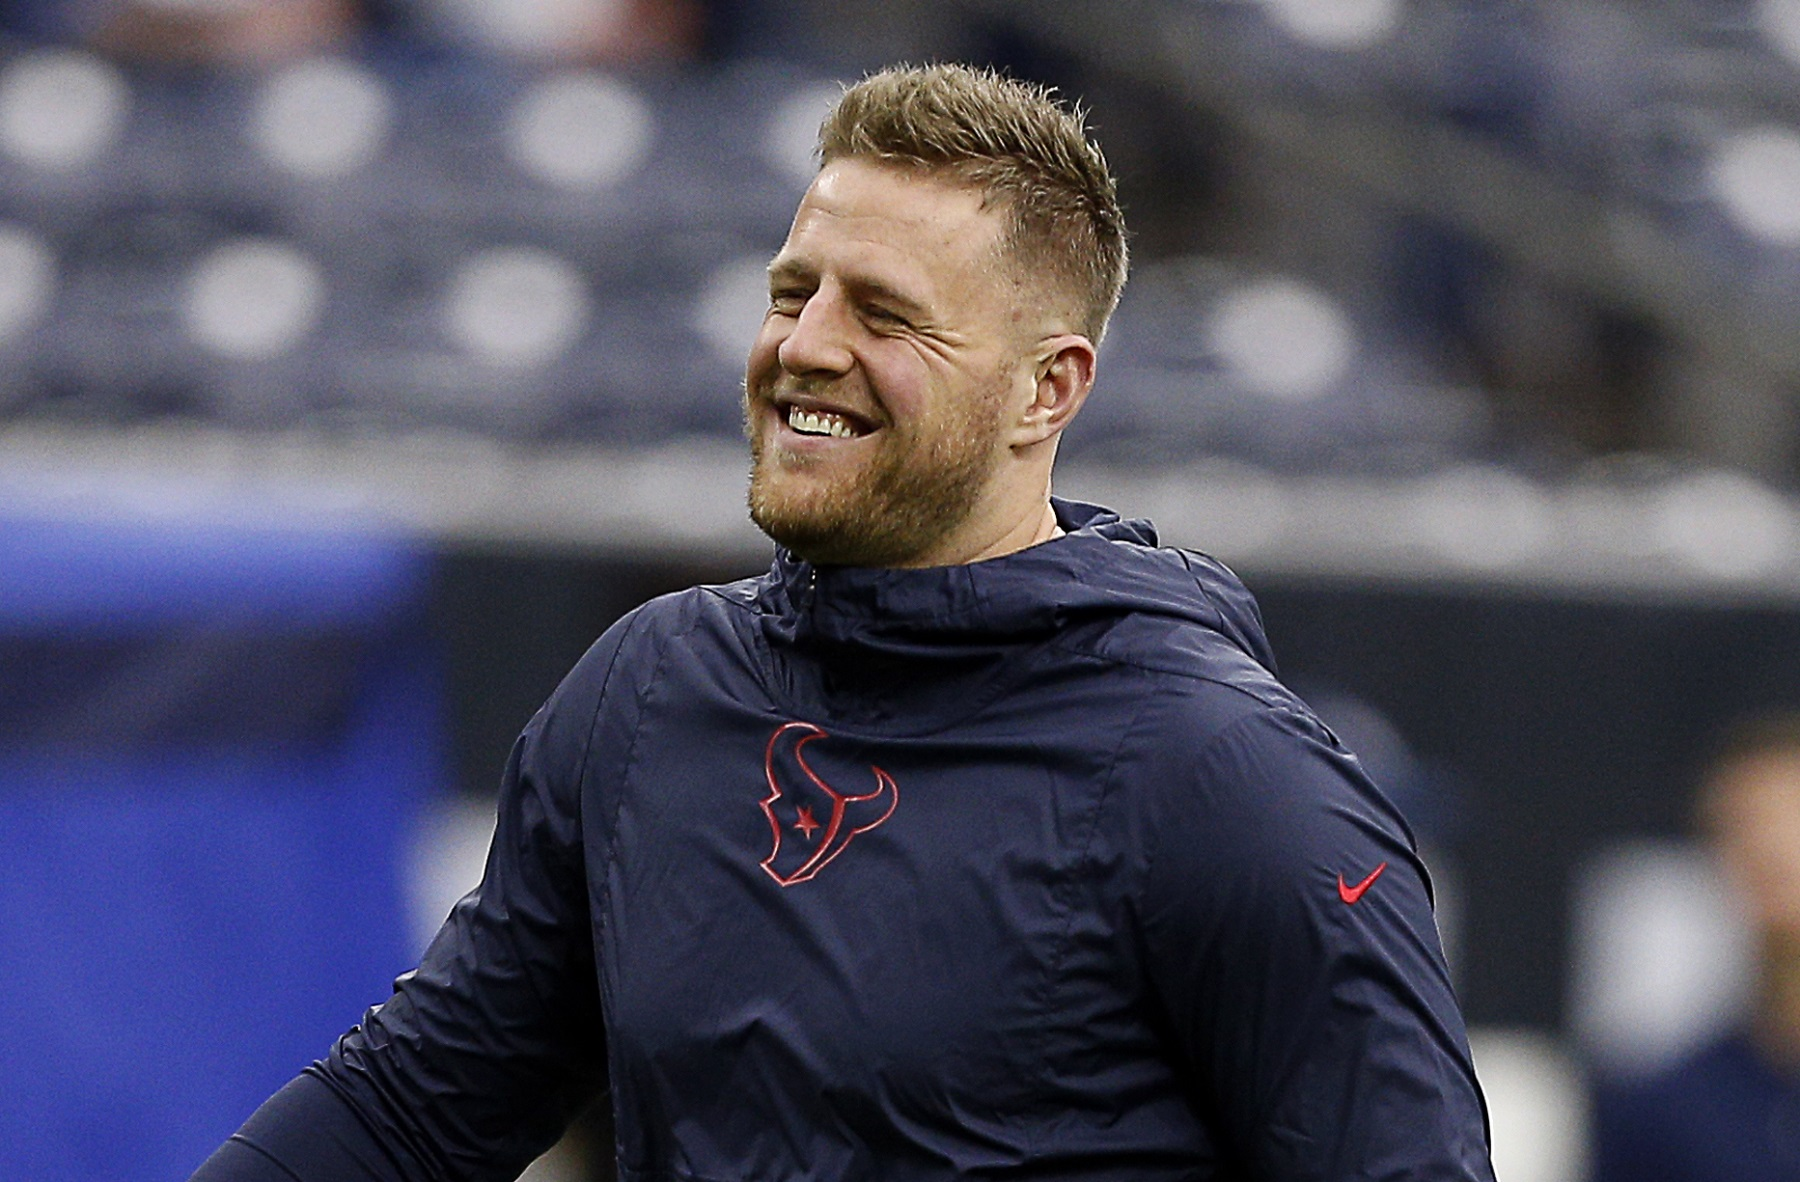 J.J. Watt Is Ready To Make the Leap From Player To Owner